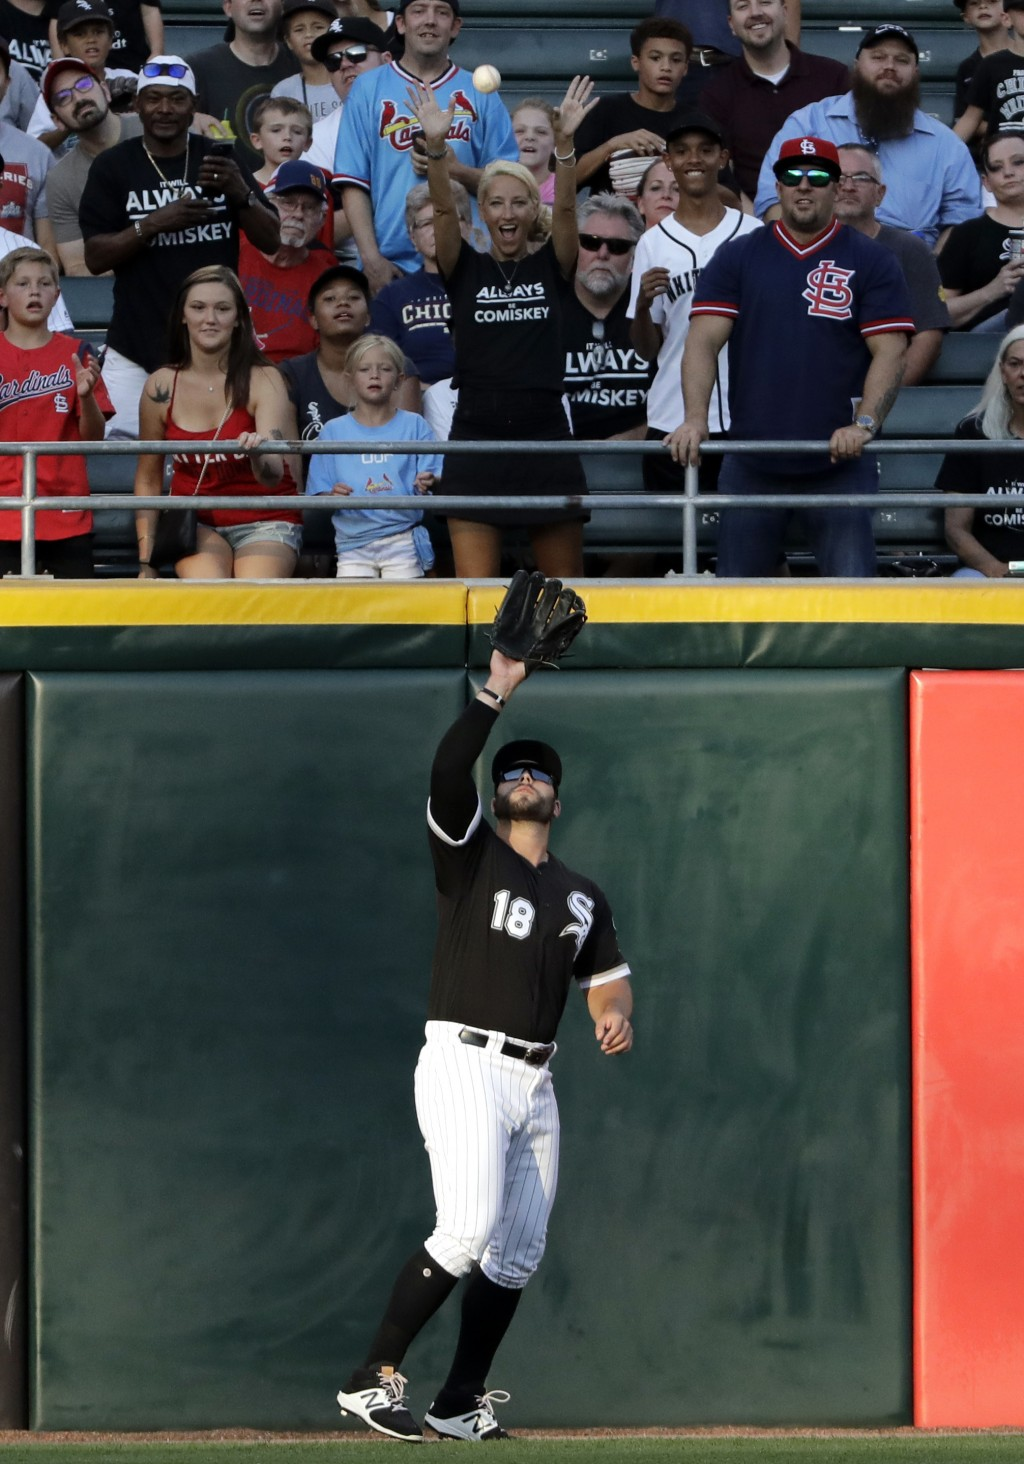 Chicago White Sox left fielder Daniel Palka catches a fly ball hit by St. Louis Cardinals' Matt Carpenter during the first inning of a baseball game i